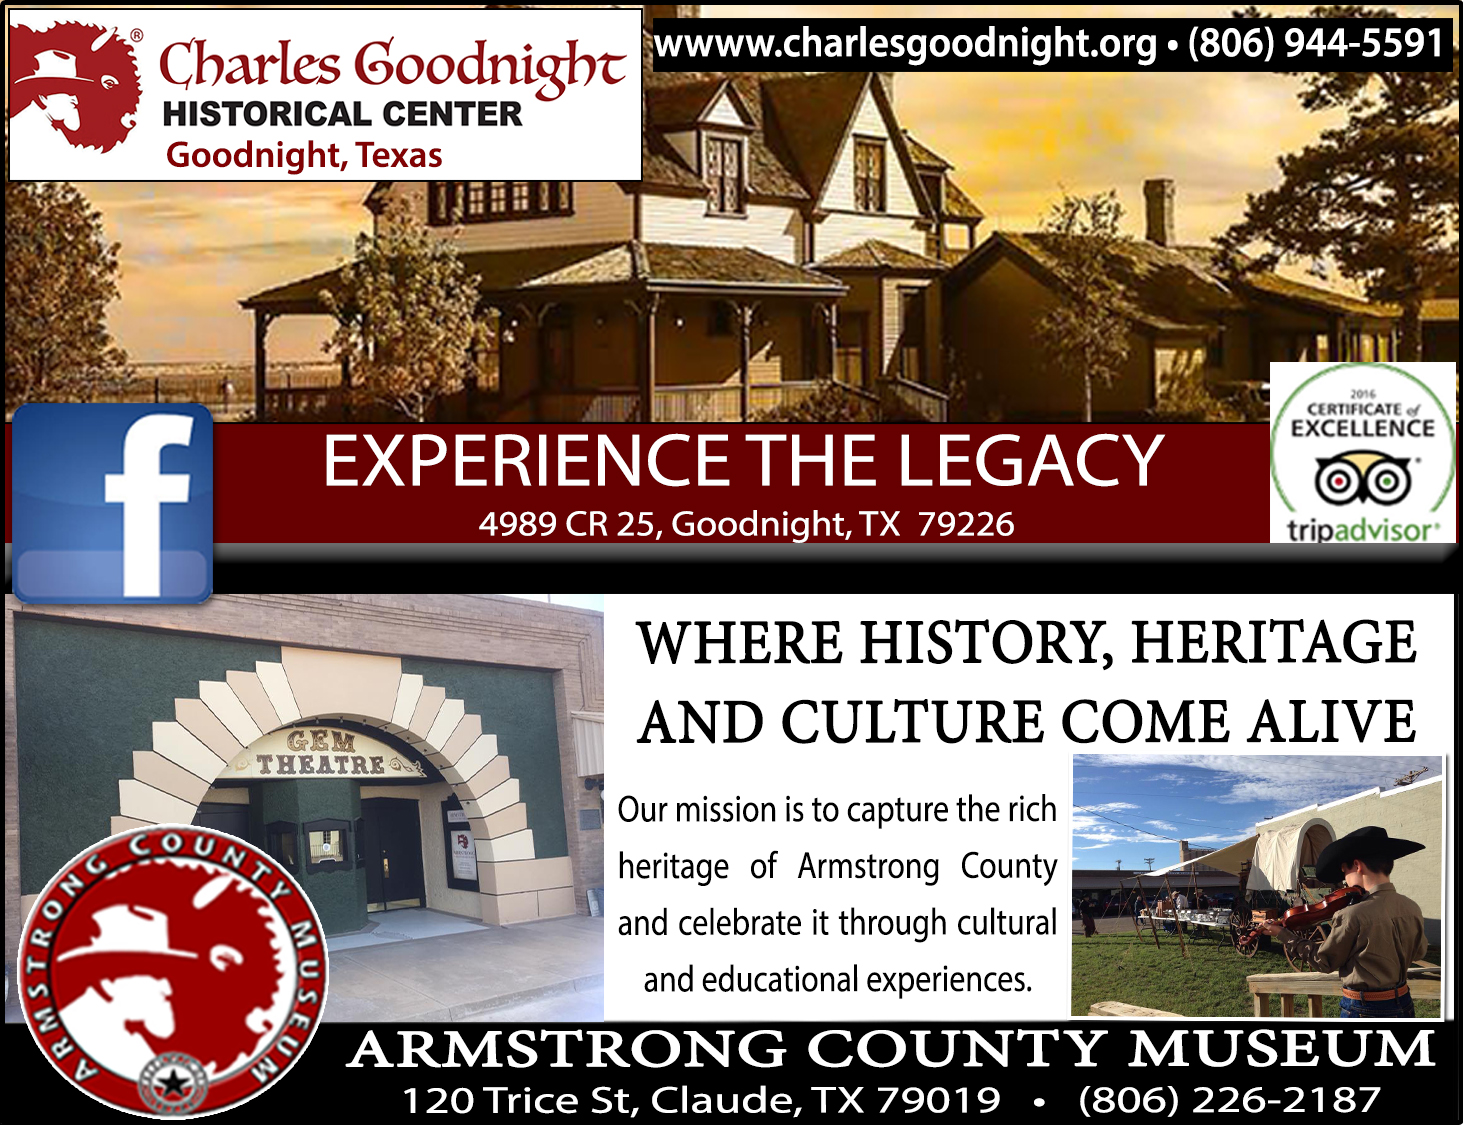 Goodnight Historical Center/Armstrong County Museum